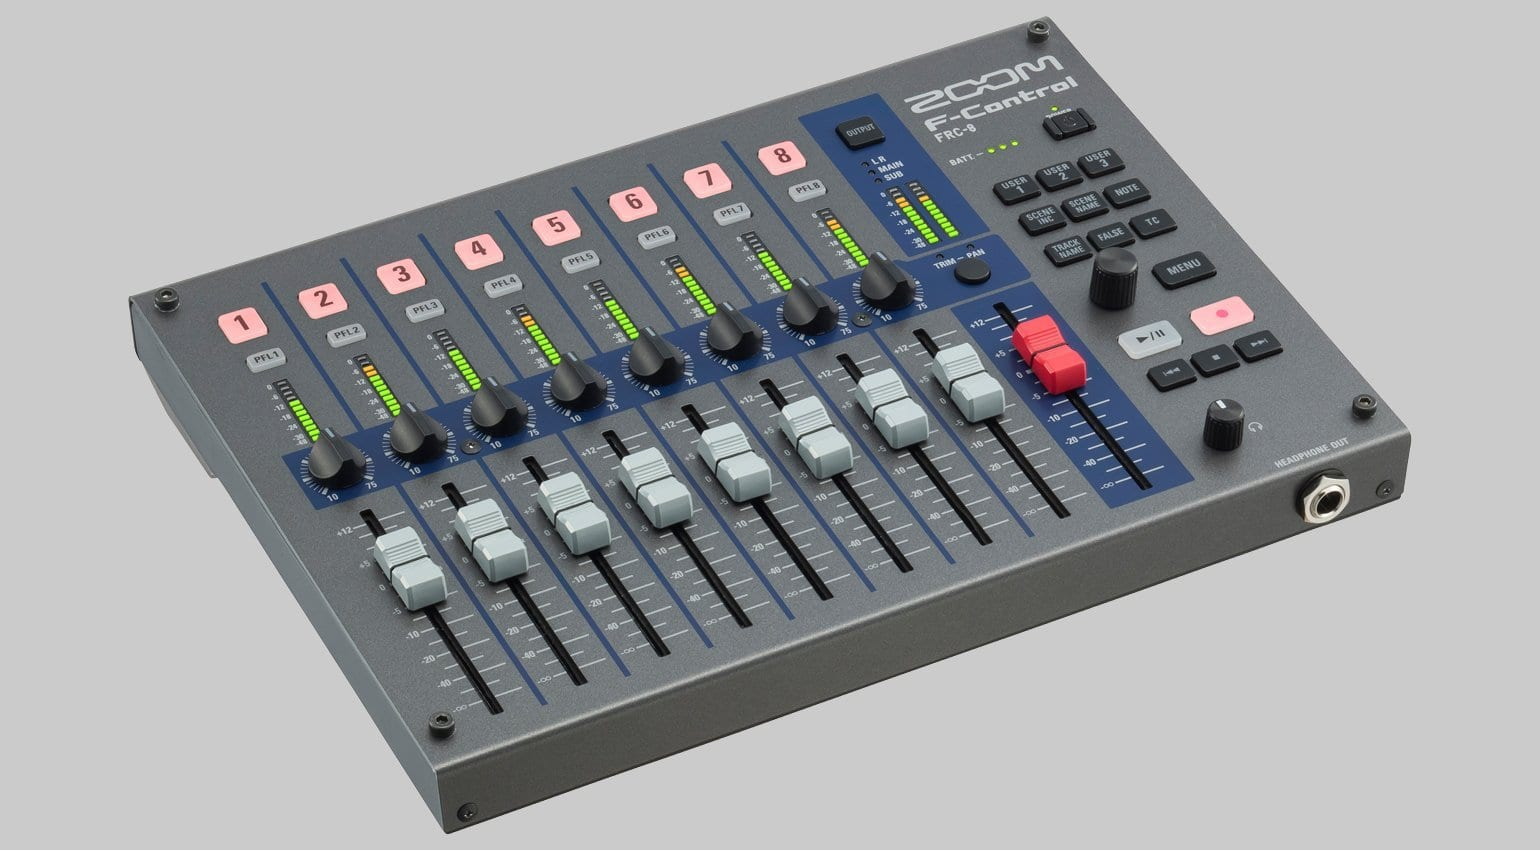 Zoom F-Control remote mixer for F8 and F4 announced